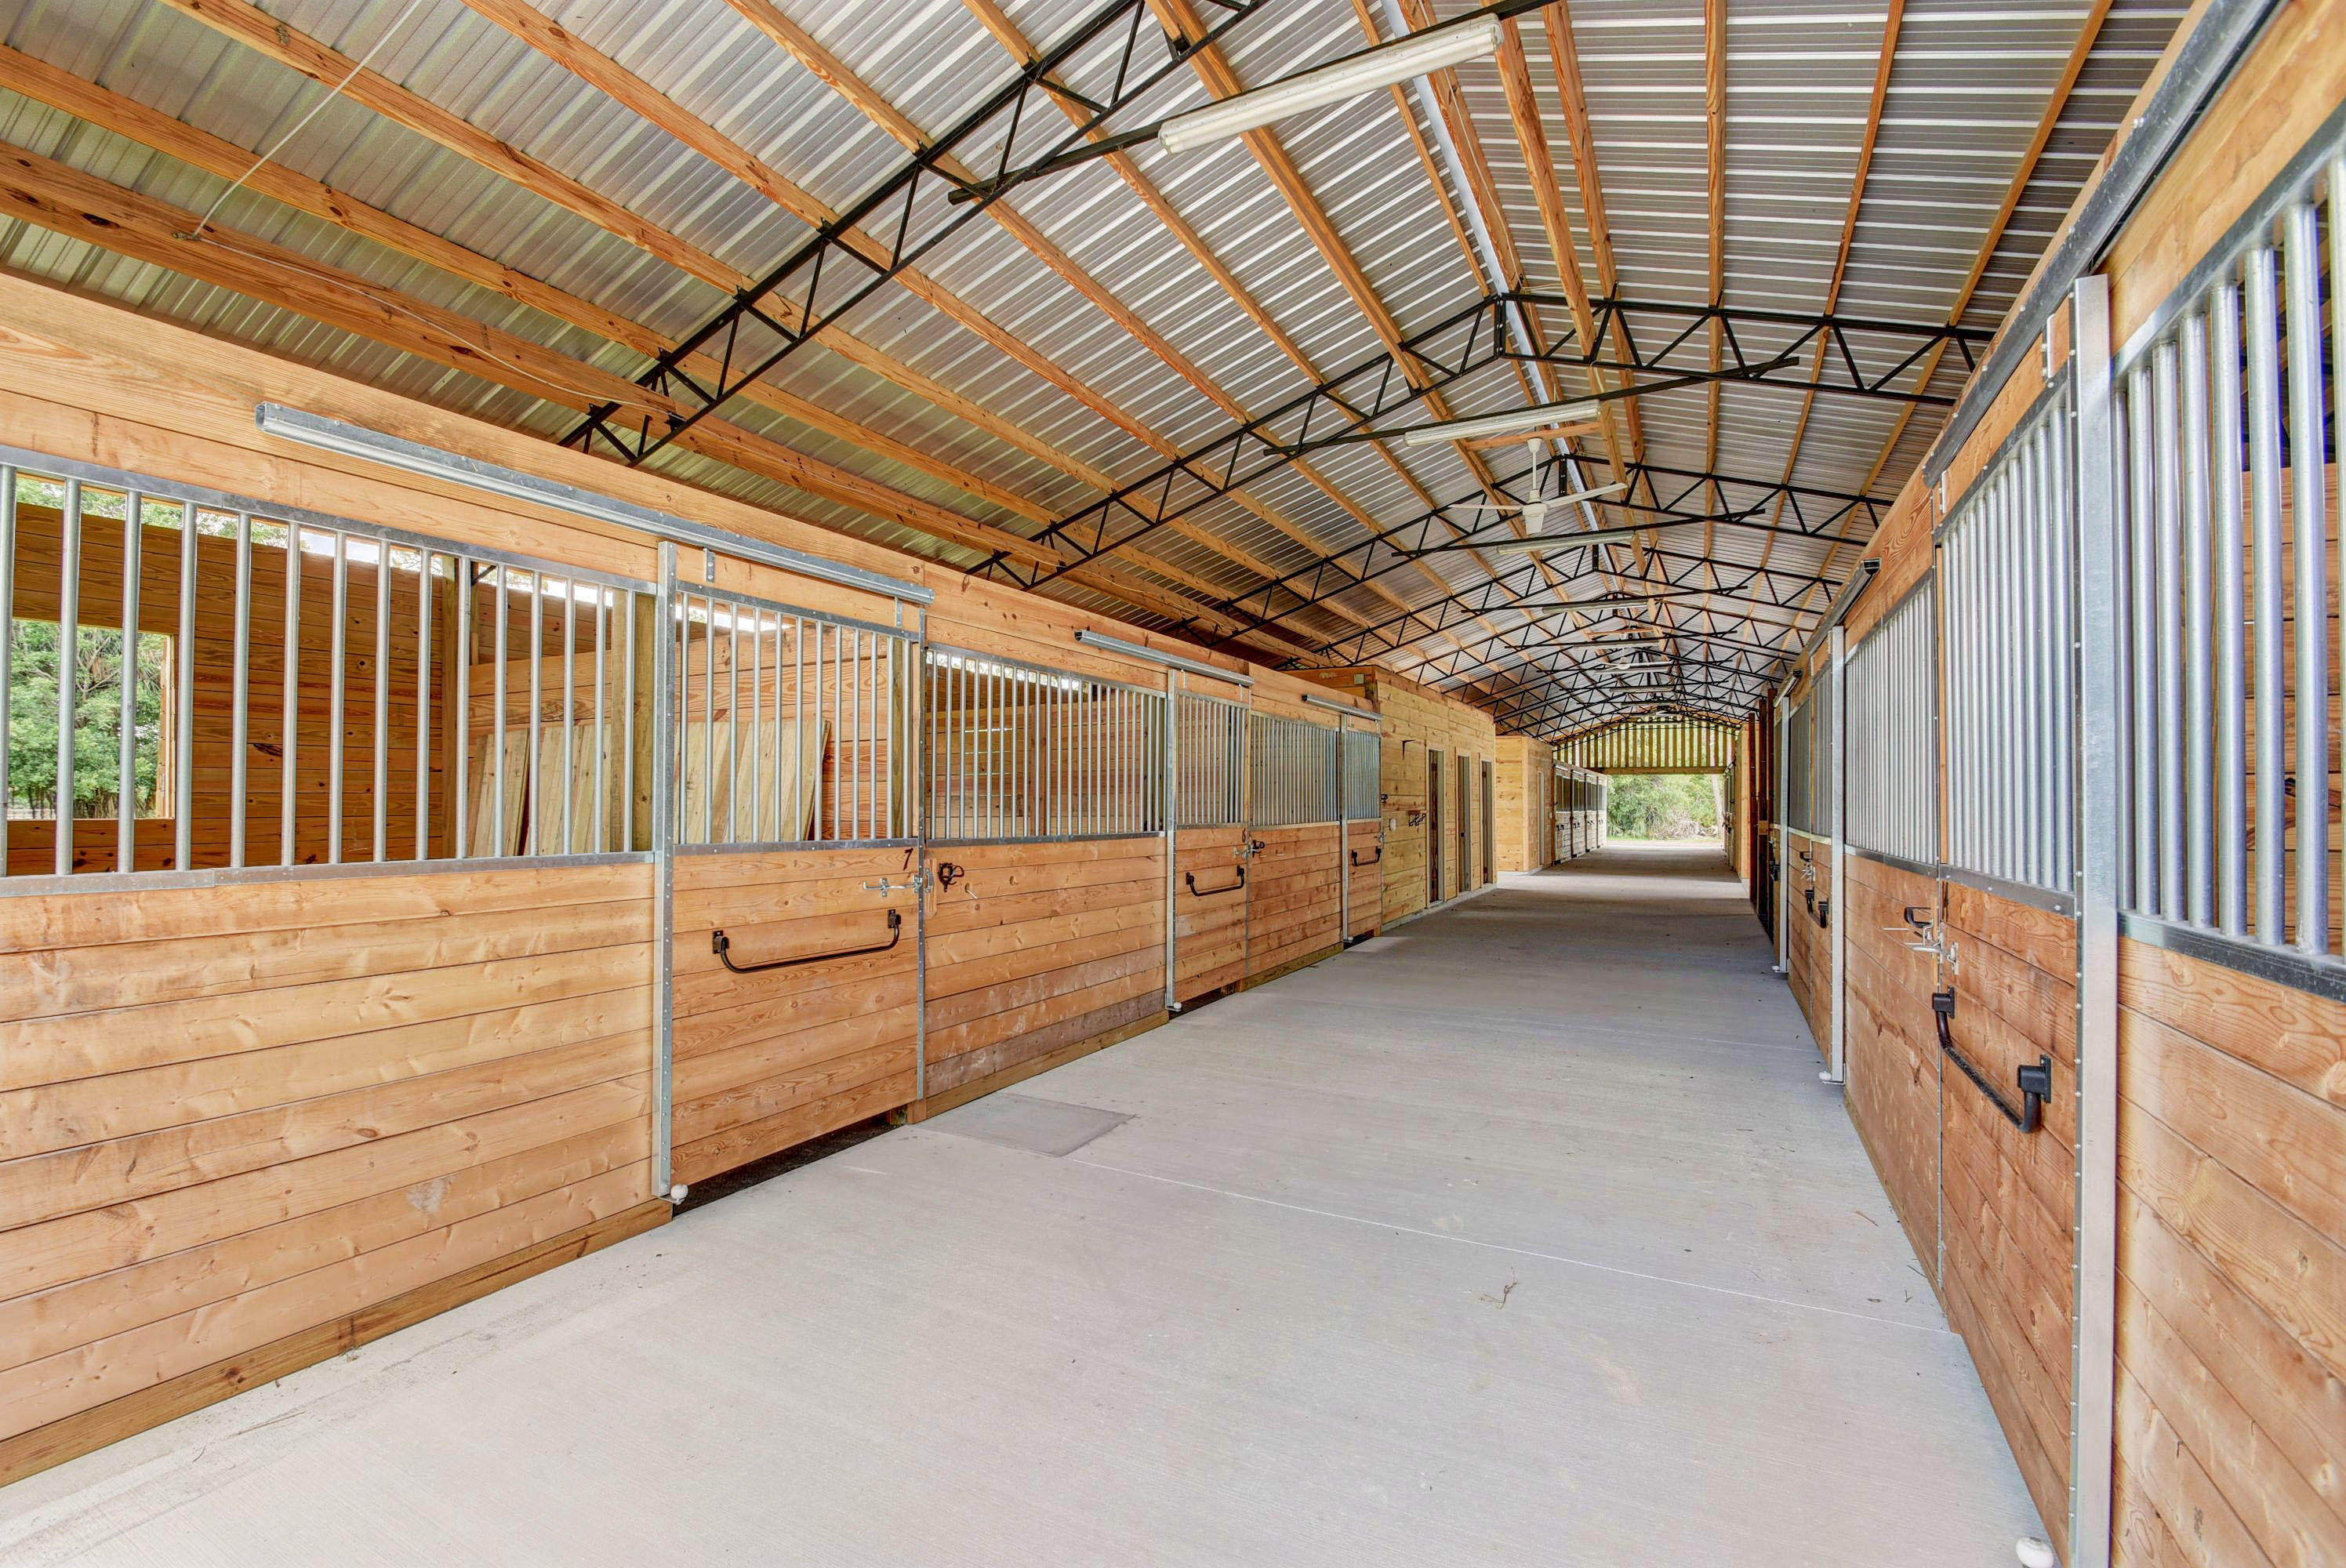 13101 Collecting Canal Road, Loxahatchee Groves, Florida 33470, ,Barn,For Rent,Loxahatchee Groves,Collecting Canal,RX-10532436